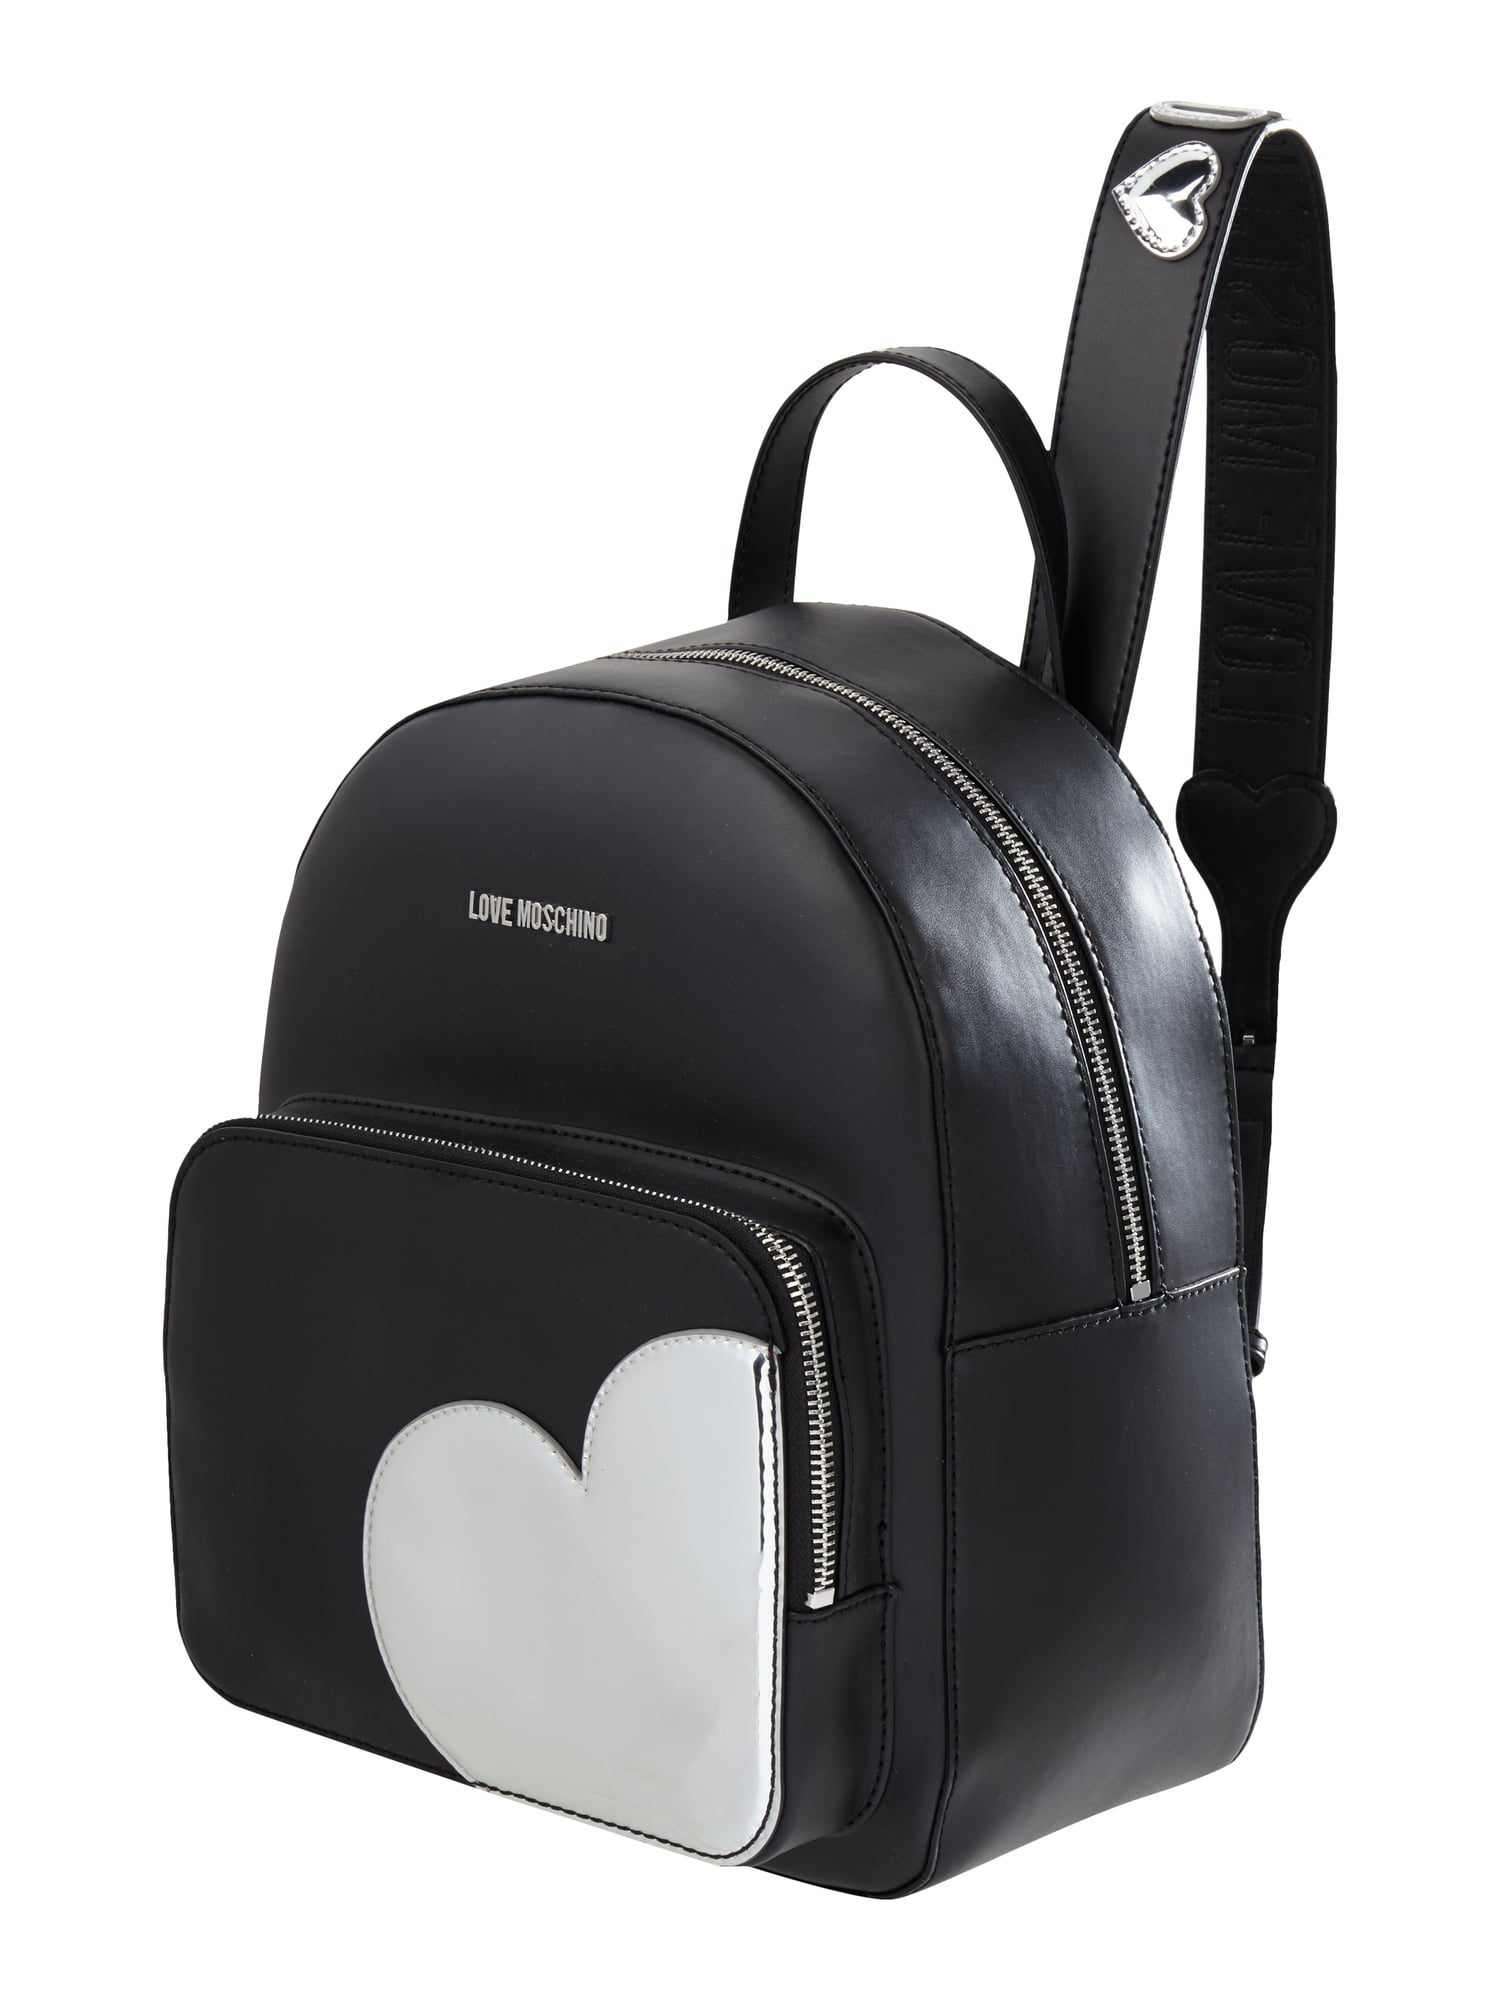 love moschino rucksack mit herz aufn her in grau schwarz online kaufen 9665505 p c online. Black Bedroom Furniture Sets. Home Design Ideas